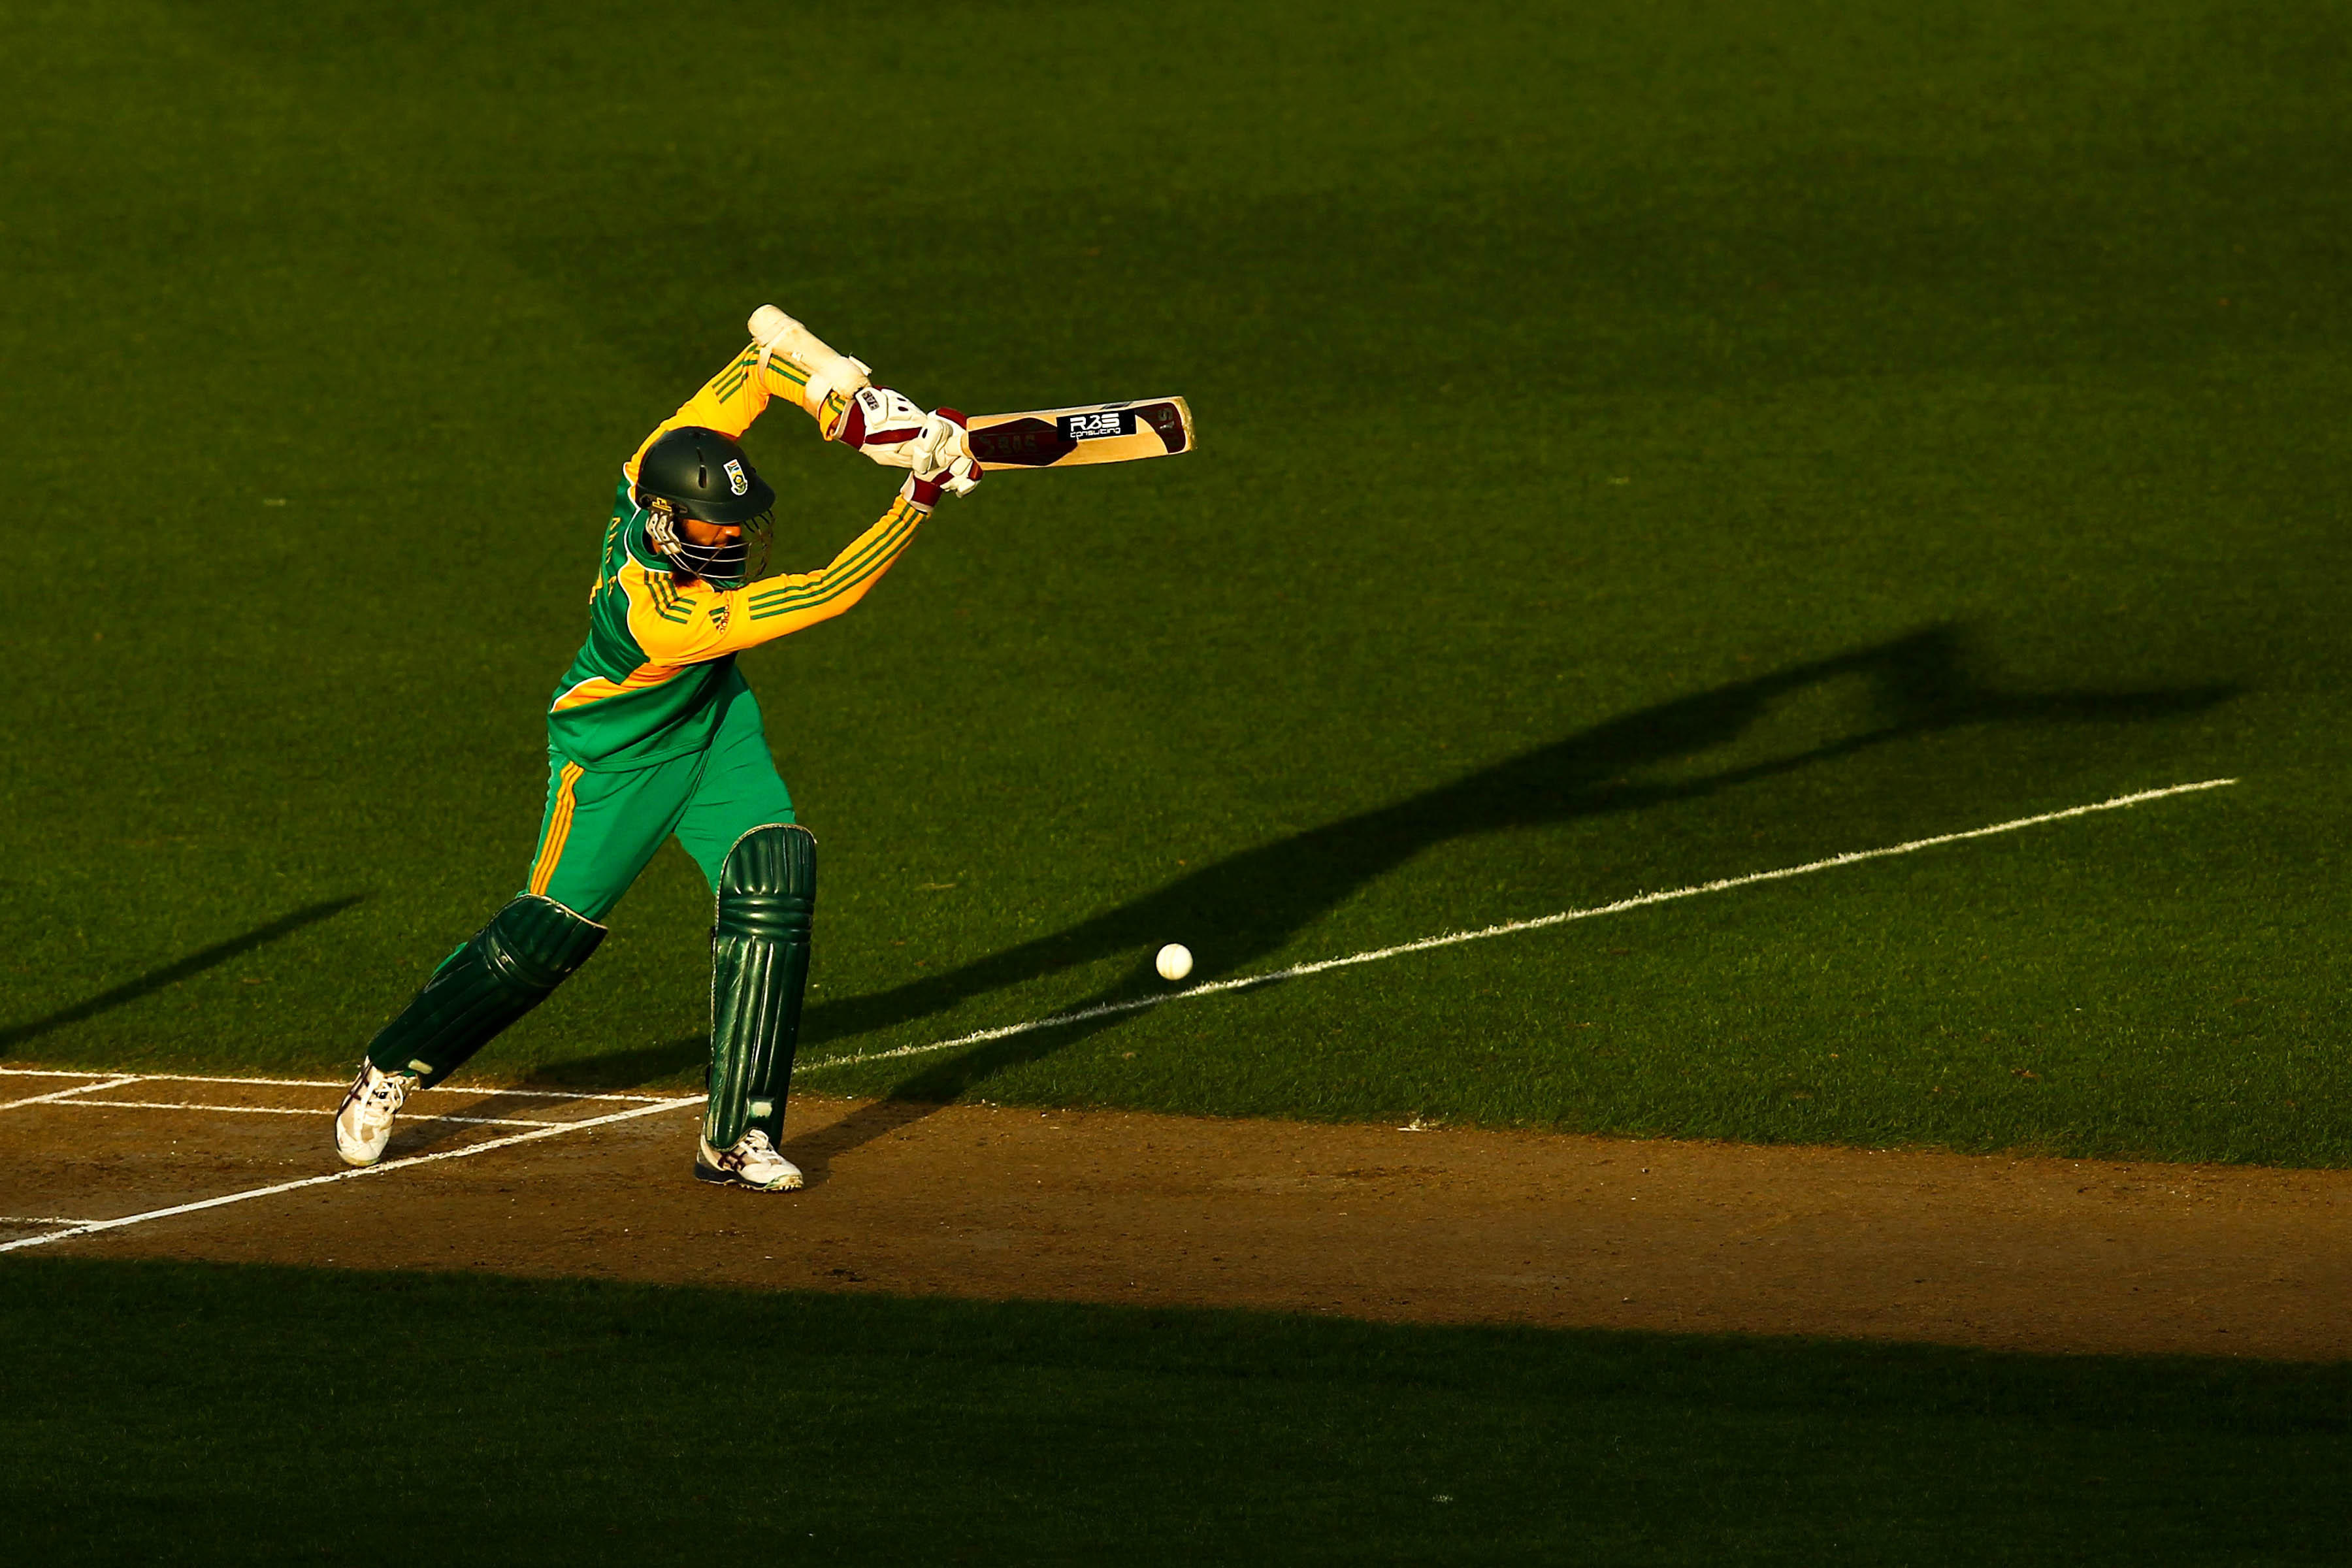 3 March 2012: Hashim Amla at the crease against the Black Caps at Eden Park in Auckland, New Zealand. He is the fastest player in the world to reach 2 000, 3 000, 4 000, 5 000, 6 000 and 7 000 one-day international runs. (Photograph by Phil Walter/Getty Images)